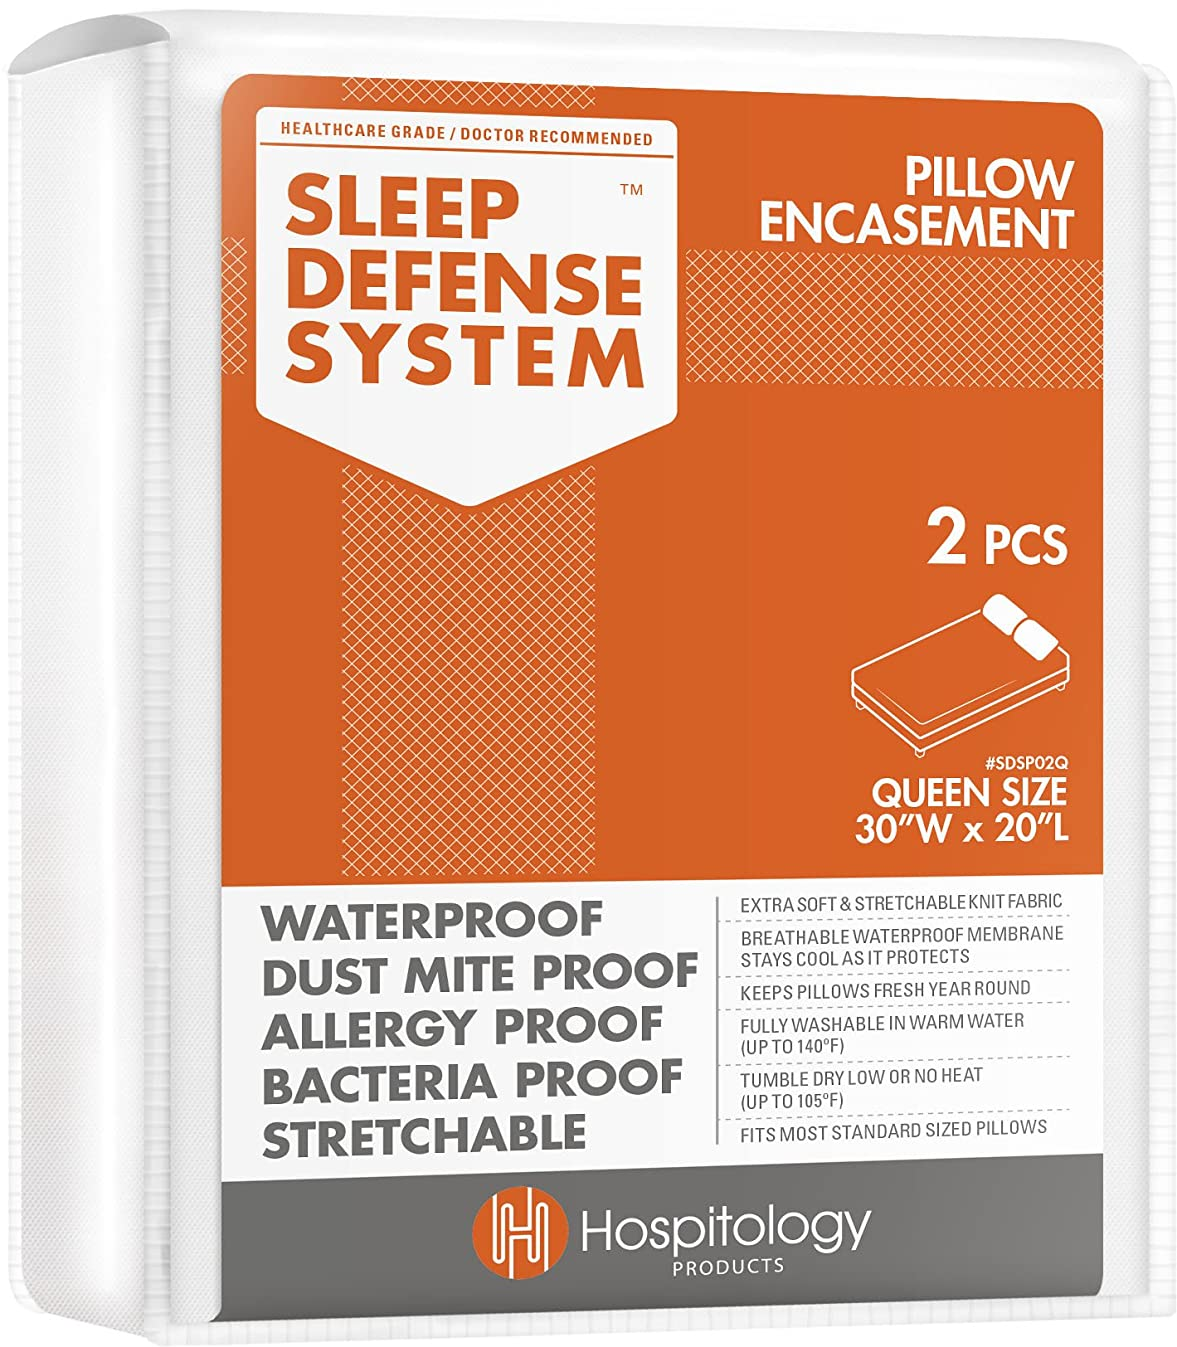 HOSPITOLOGY PRODUCTS Sleep Defense System - Zippered Pillow Encasement - Queen - Hypoallergenic Protector - Waterproof - Bed Bug & Dust Mite Proof - Set of 2-20